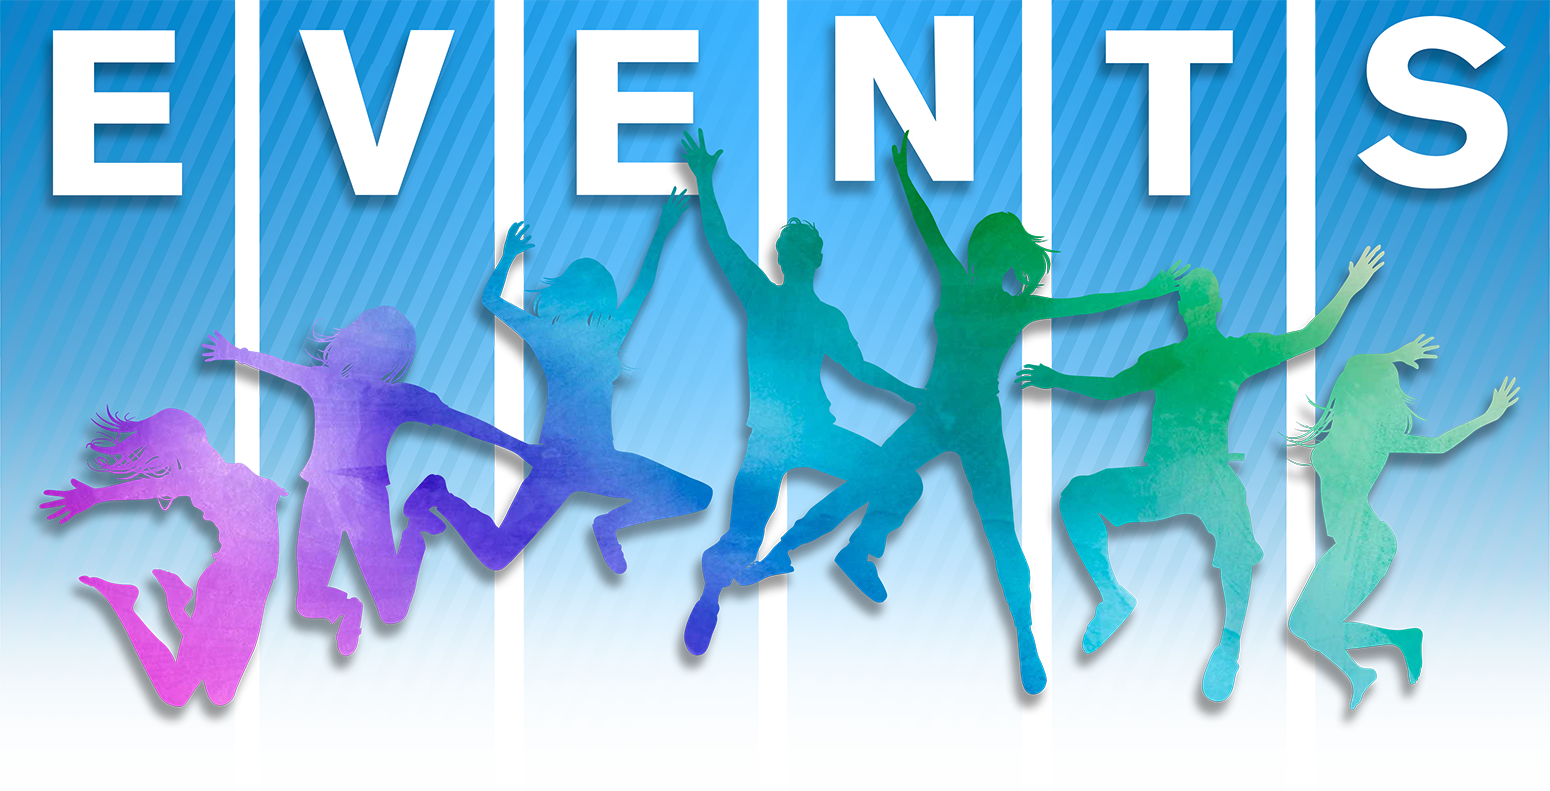 Events-banner-png.png